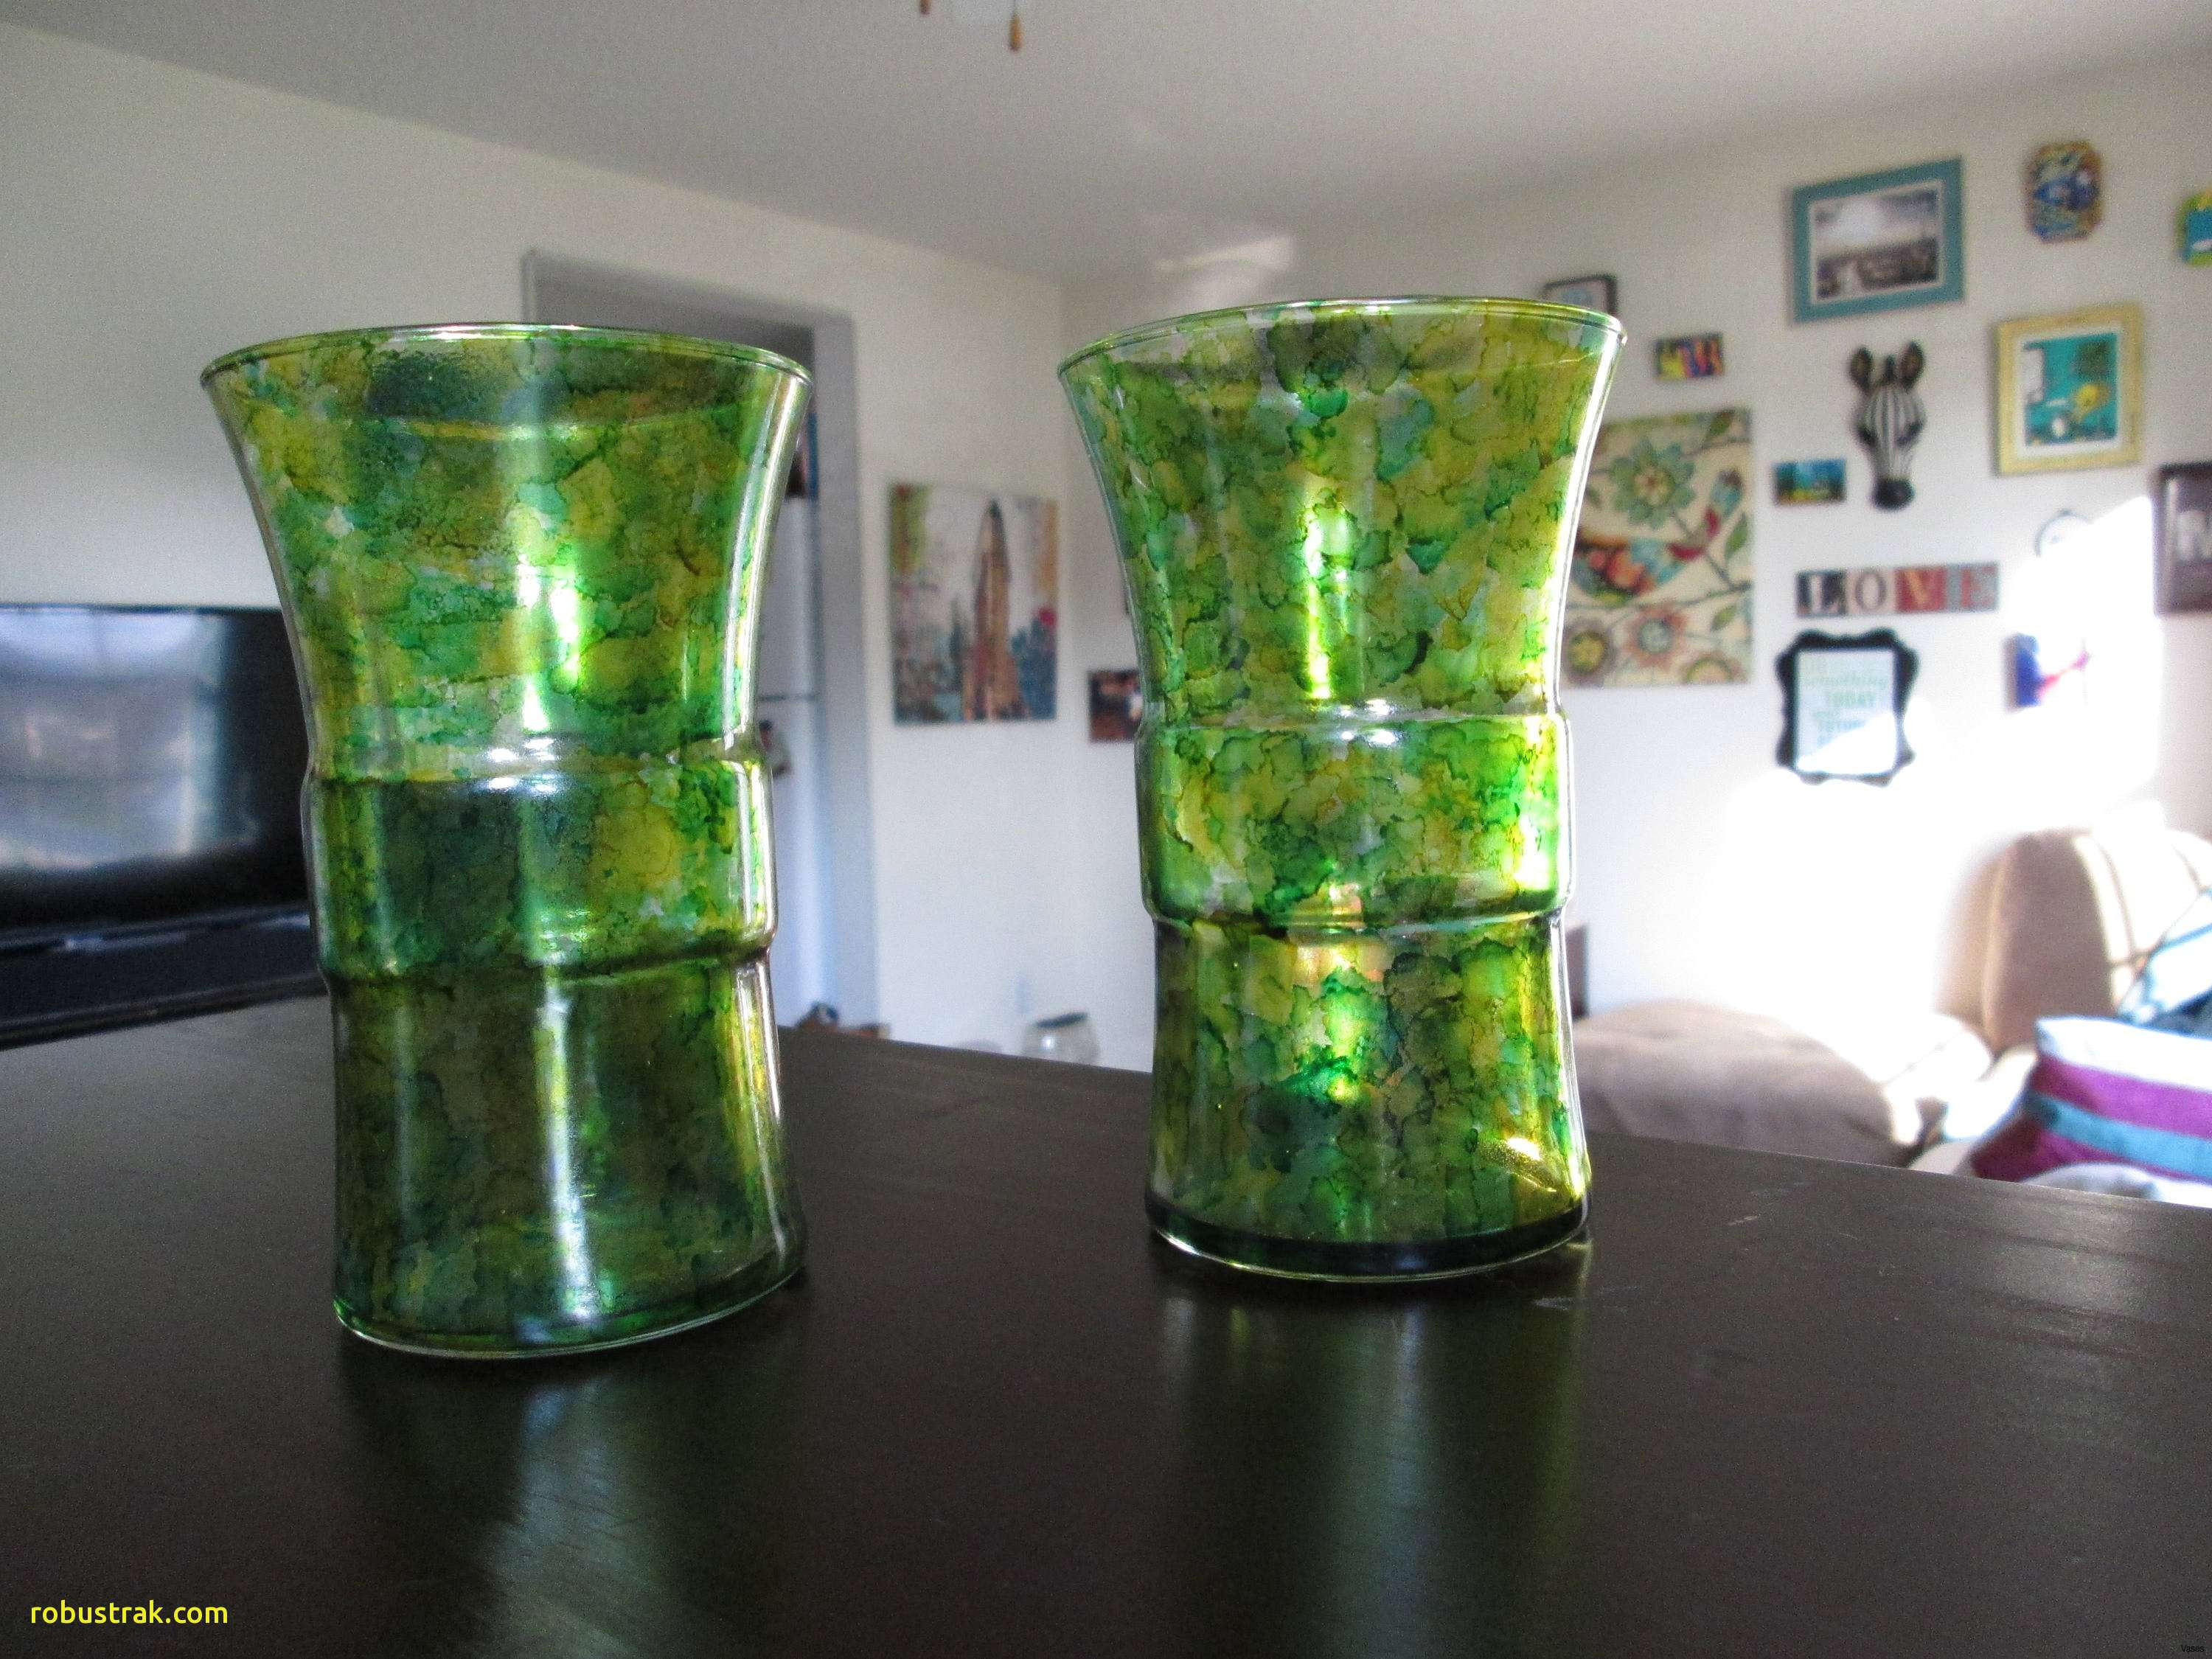 Sea Glass Vase Of Inspirational Green Glass Light Home Design Ideas Throughout Decorshore Vedic Vase Sparkling Metal Floor with Floral Pattern Glass Mosaic Inlay Designer Kale Greenh Vases